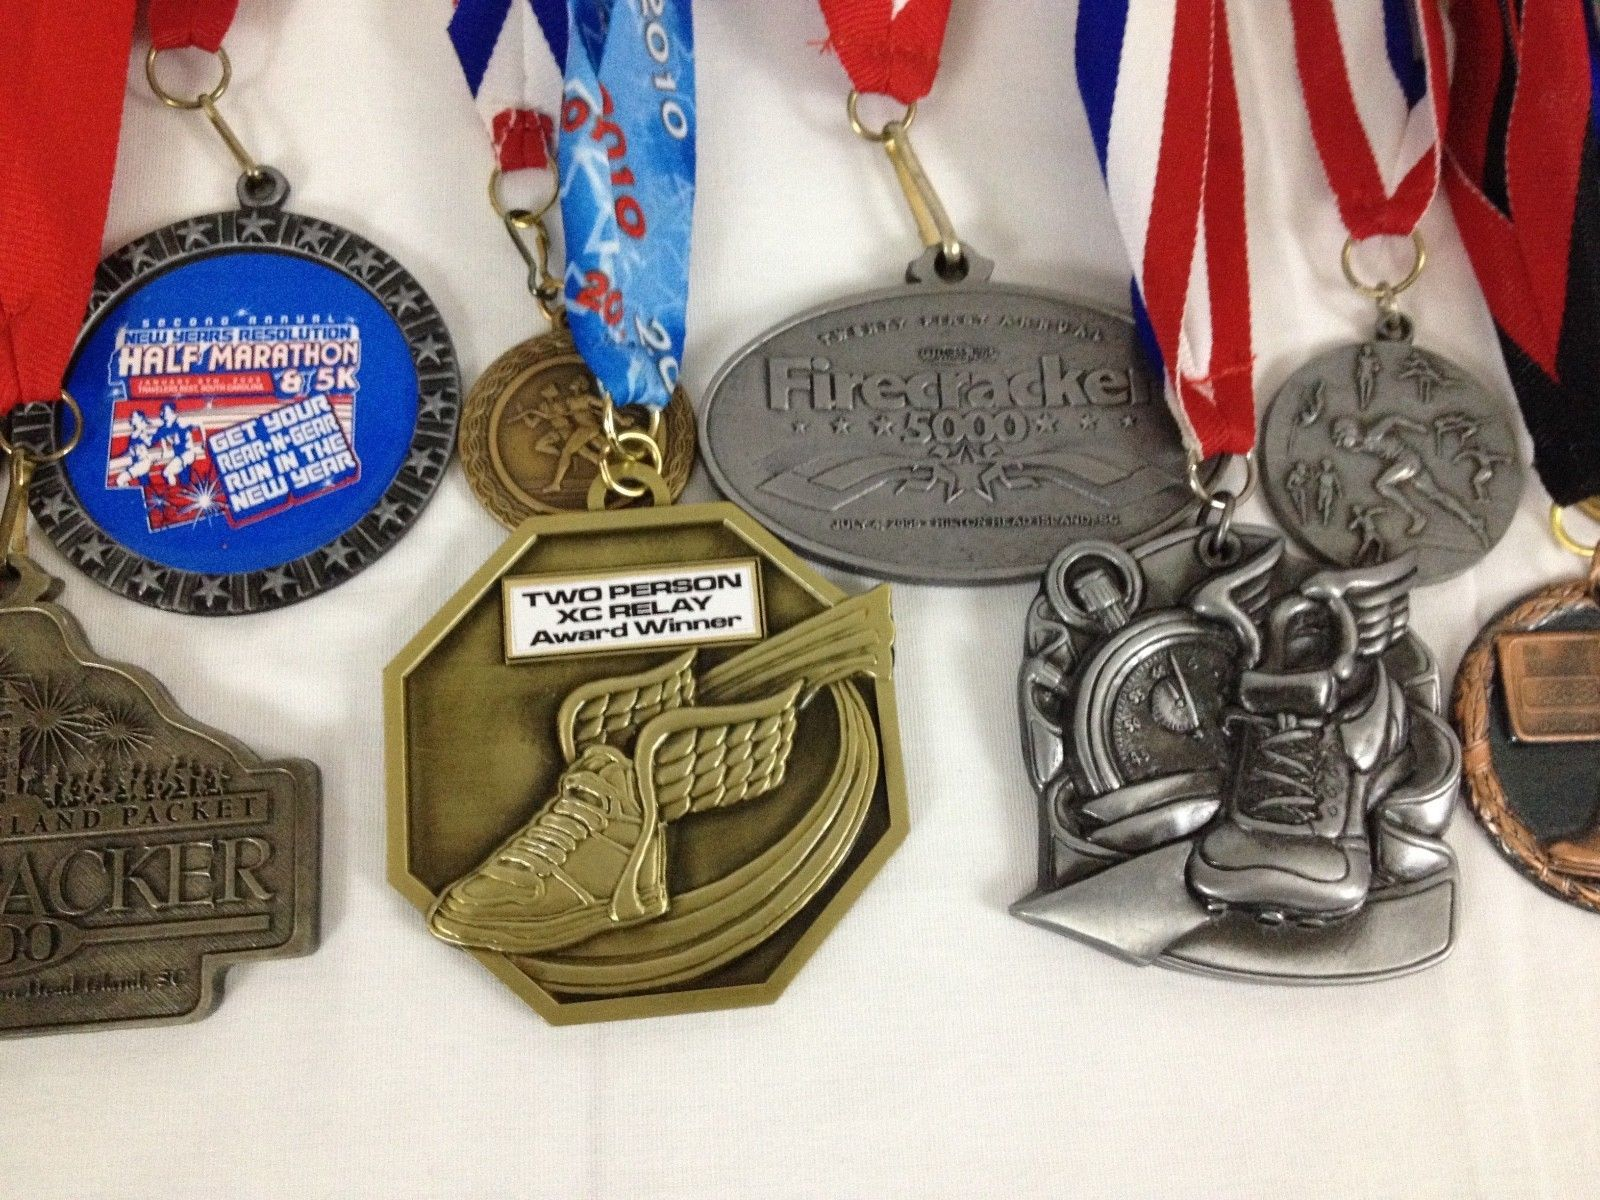 Lot of 14 Running Race Medals Medallions Awards From Various Events image 3